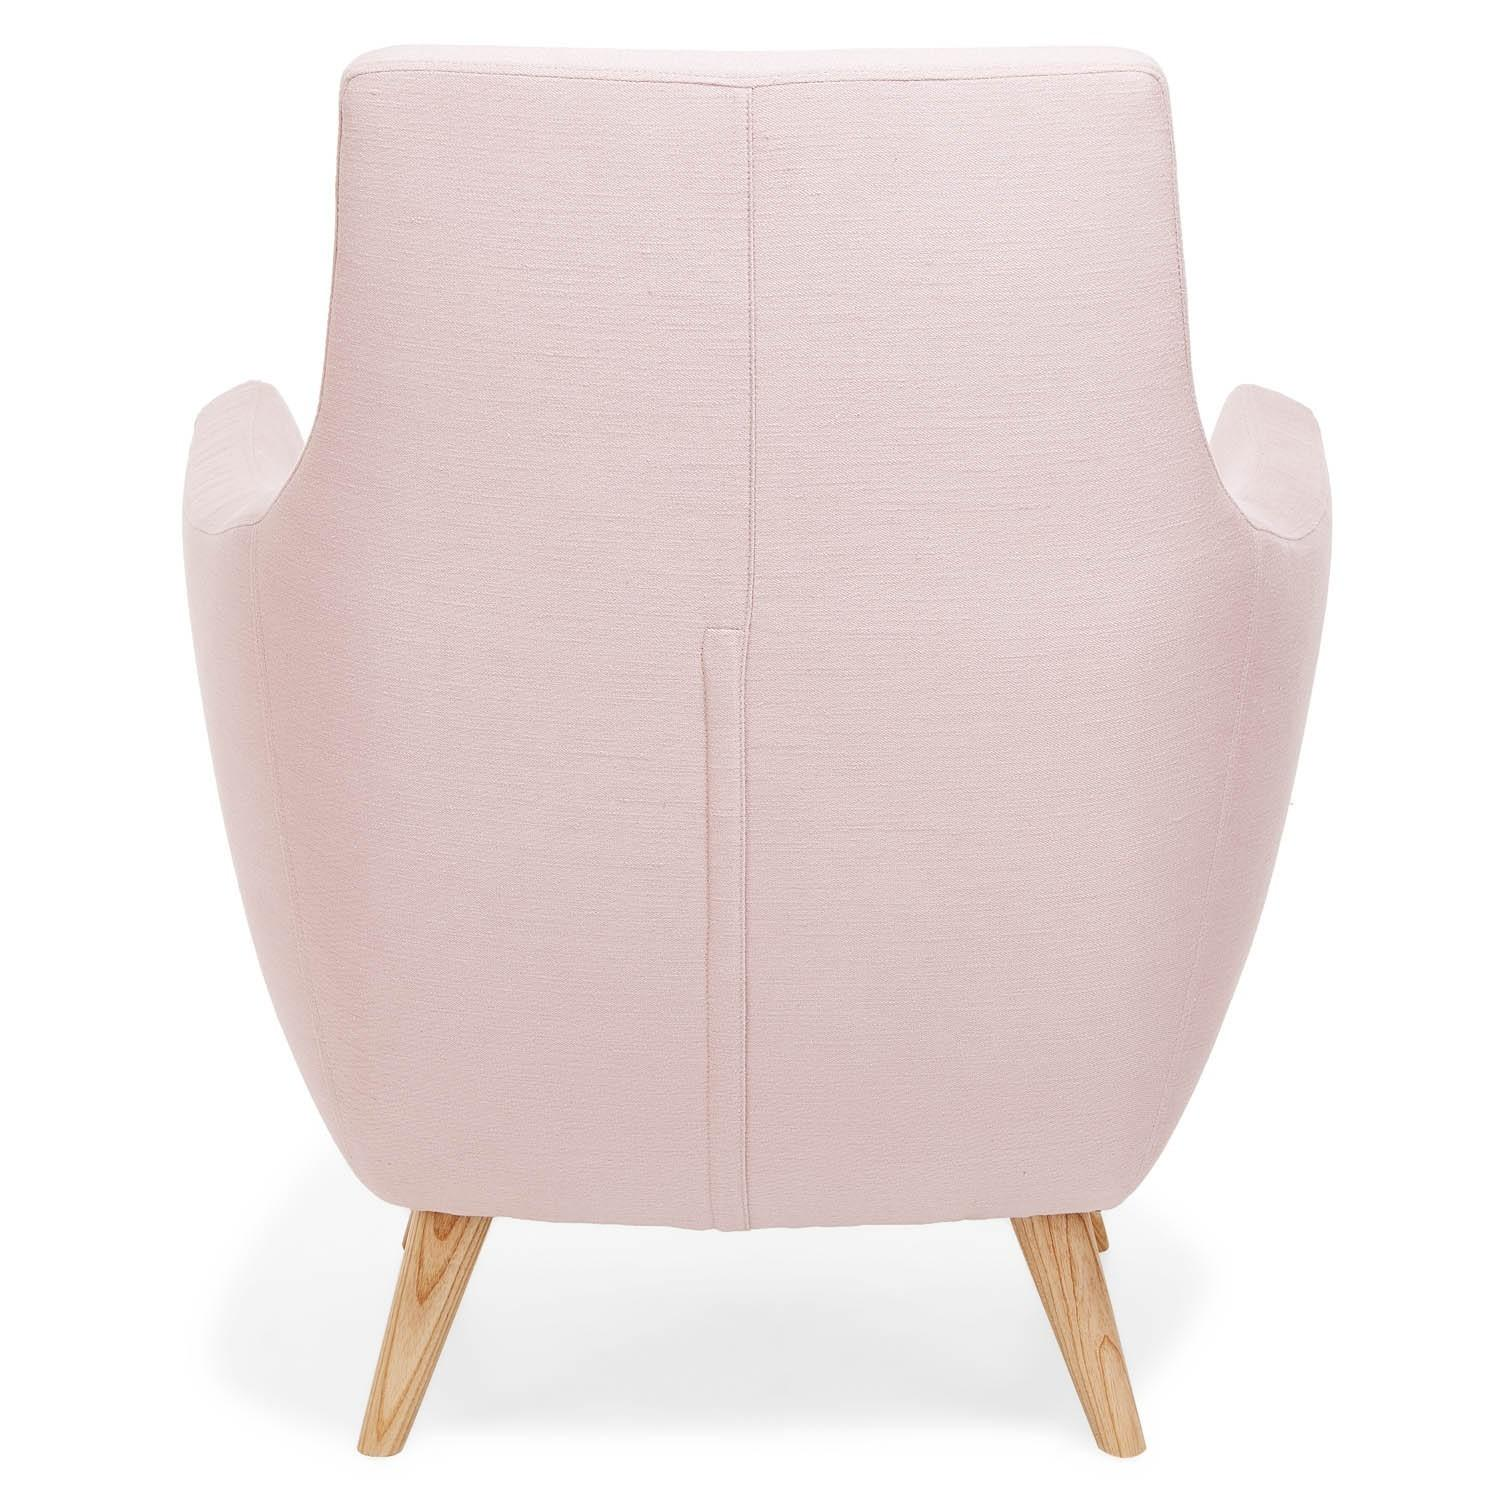 ABC Carpet & Home Pittsburg Pink Armchair - image-3